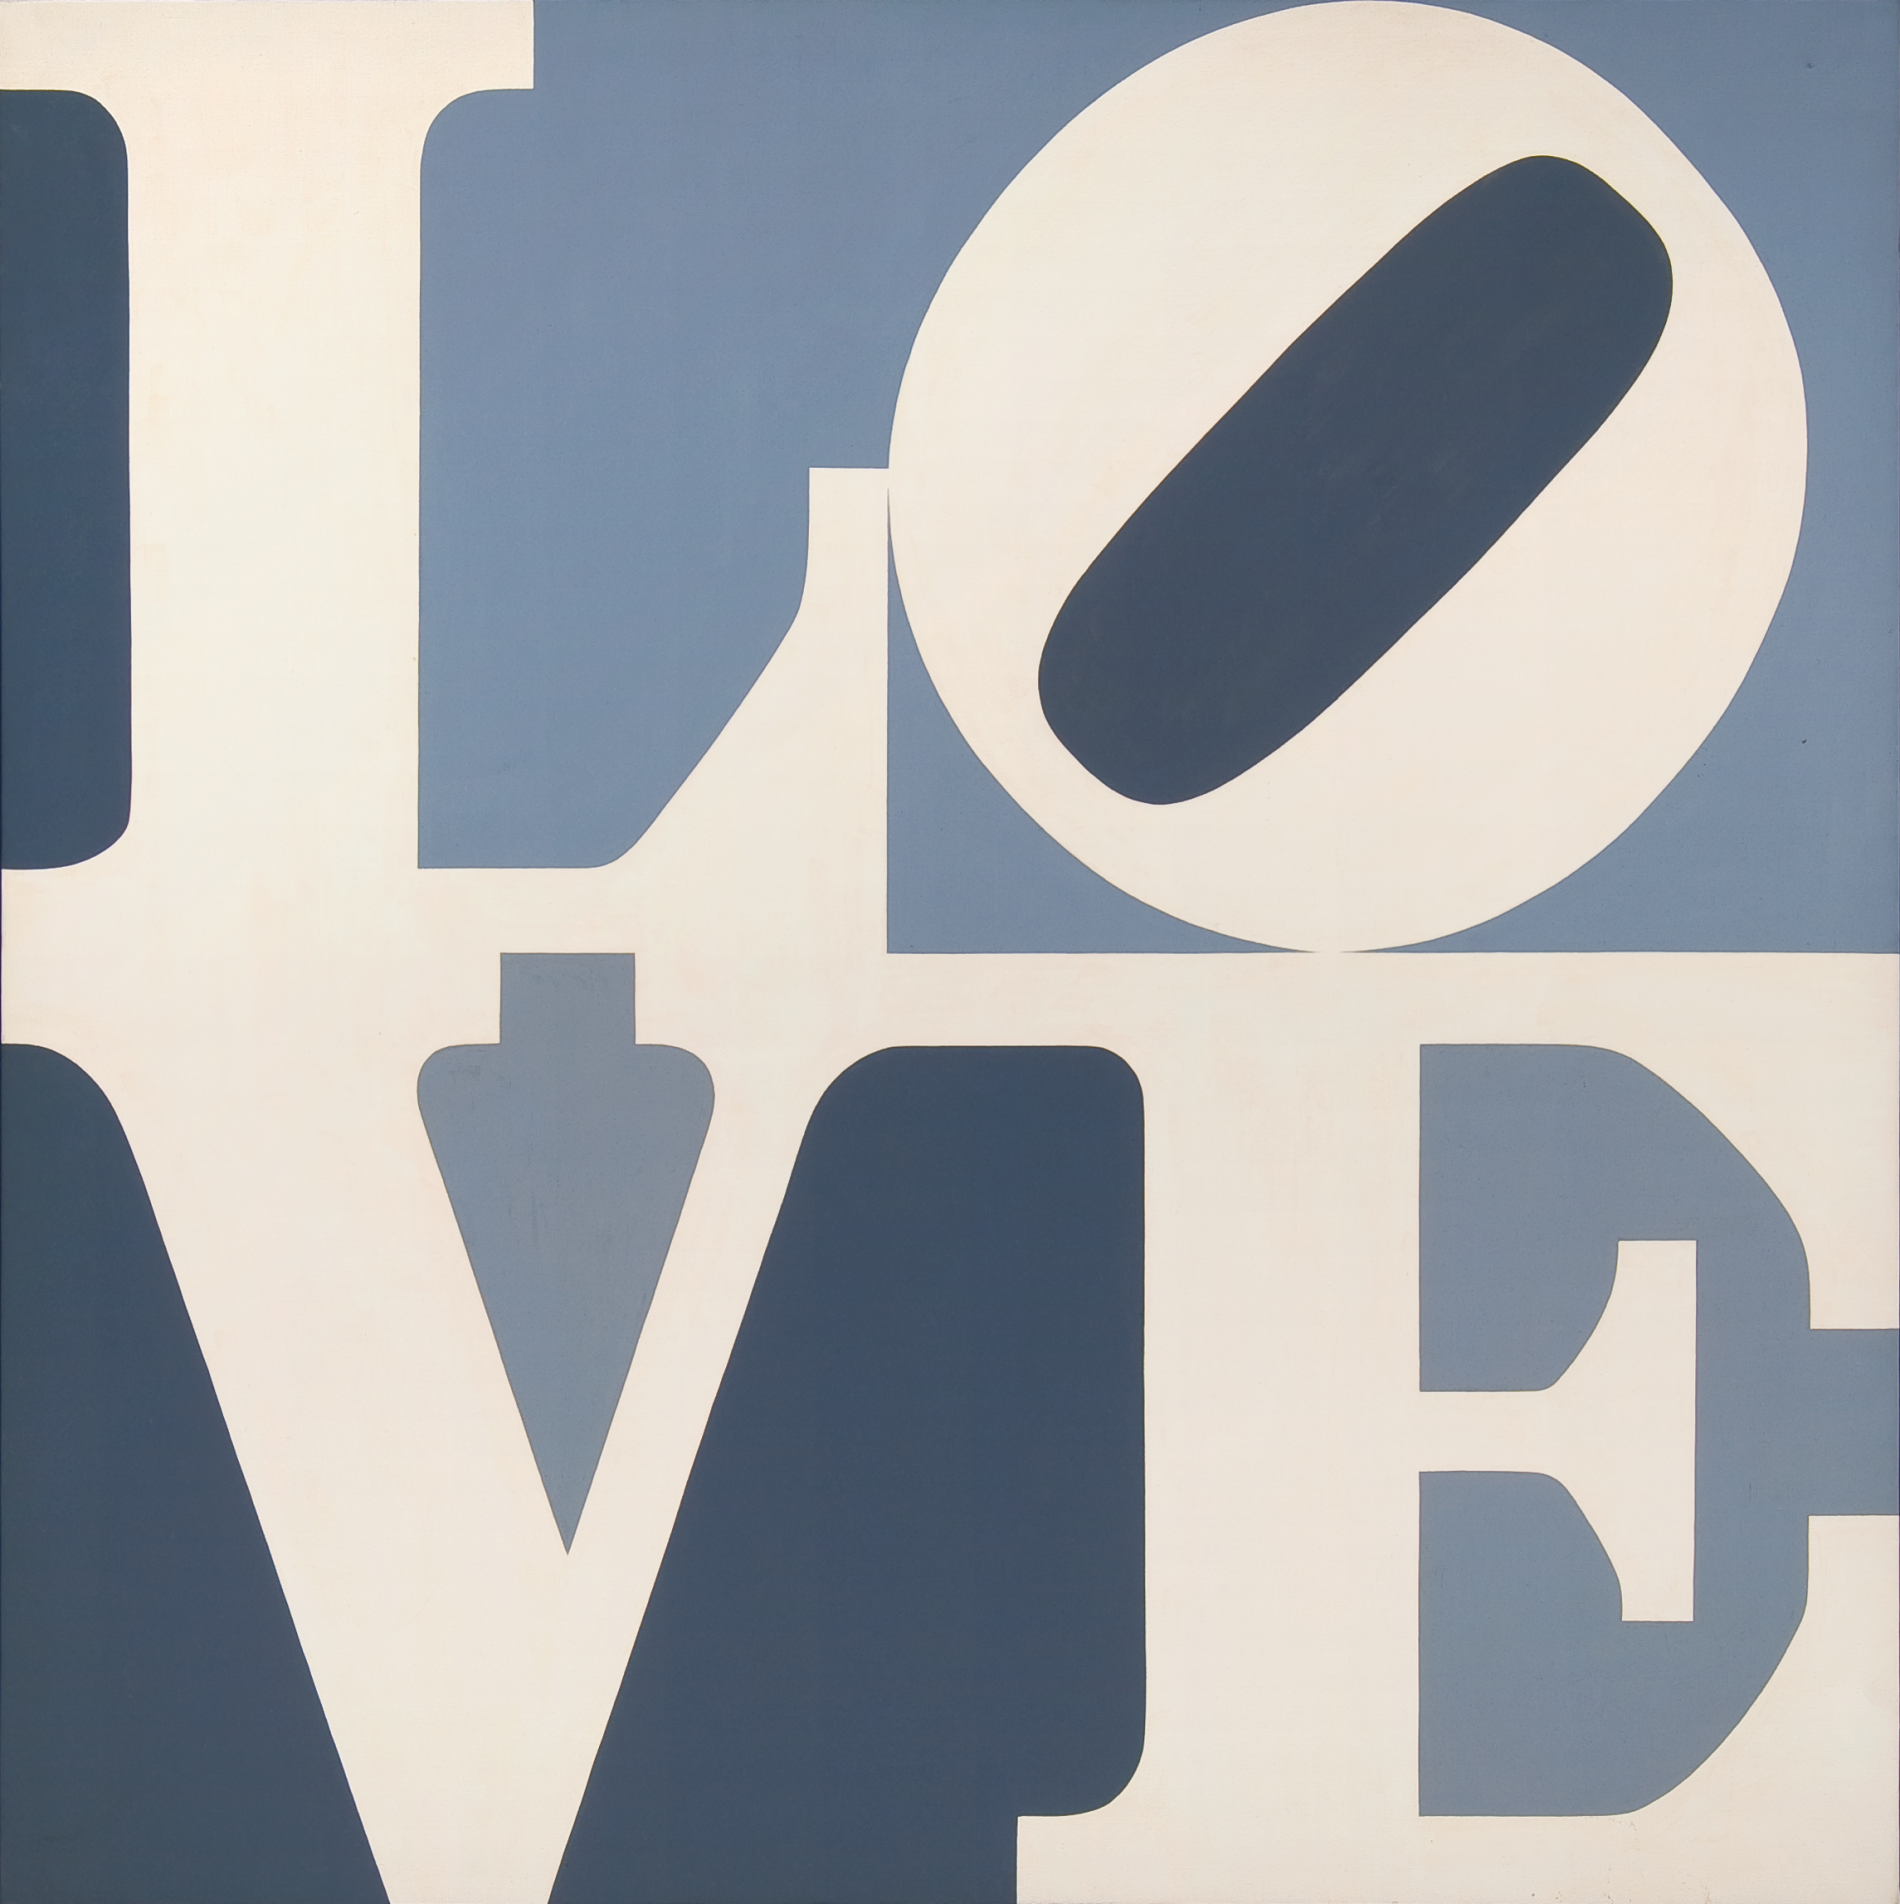 Robert Indiana, LOVE , 1967. Oil on canvas. Collection of The Tobin Theatre Arts Fund. © Morgan Art Foundation/ Artists Rights Society (ARS), New York.